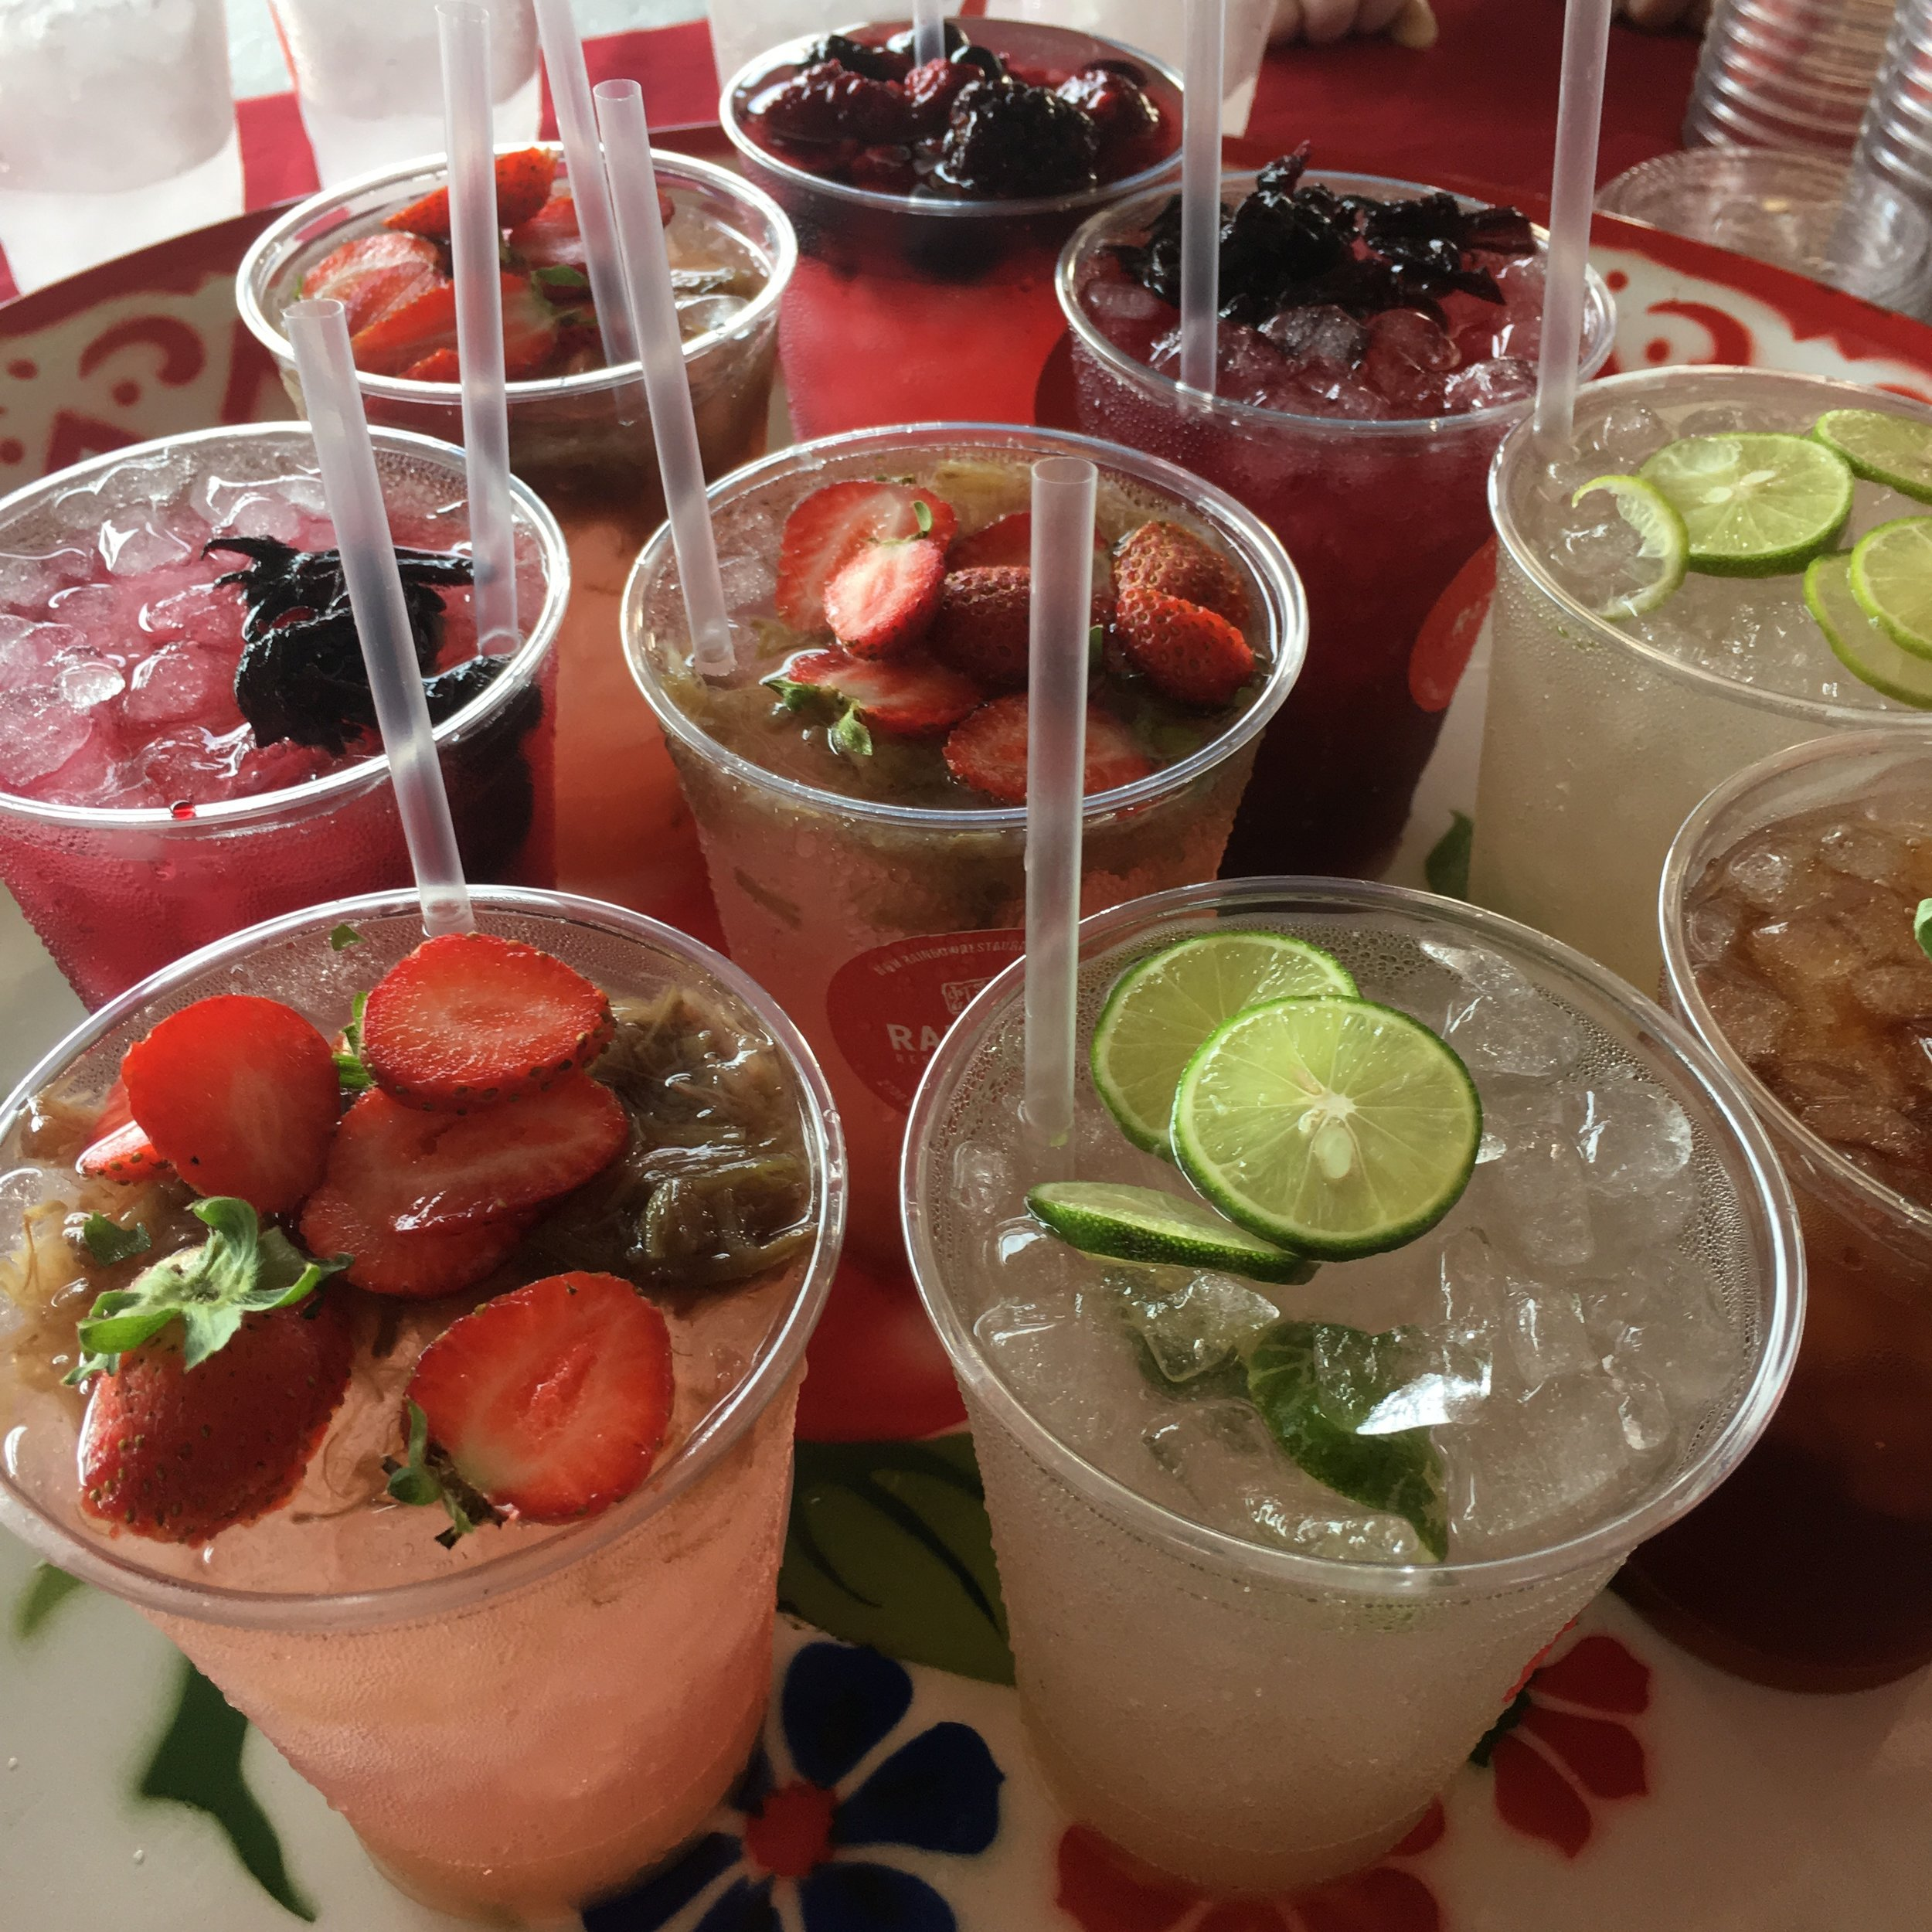 Freshly made herbaceous coolers: lime/lemongrass, hibiscus, strawberry and more